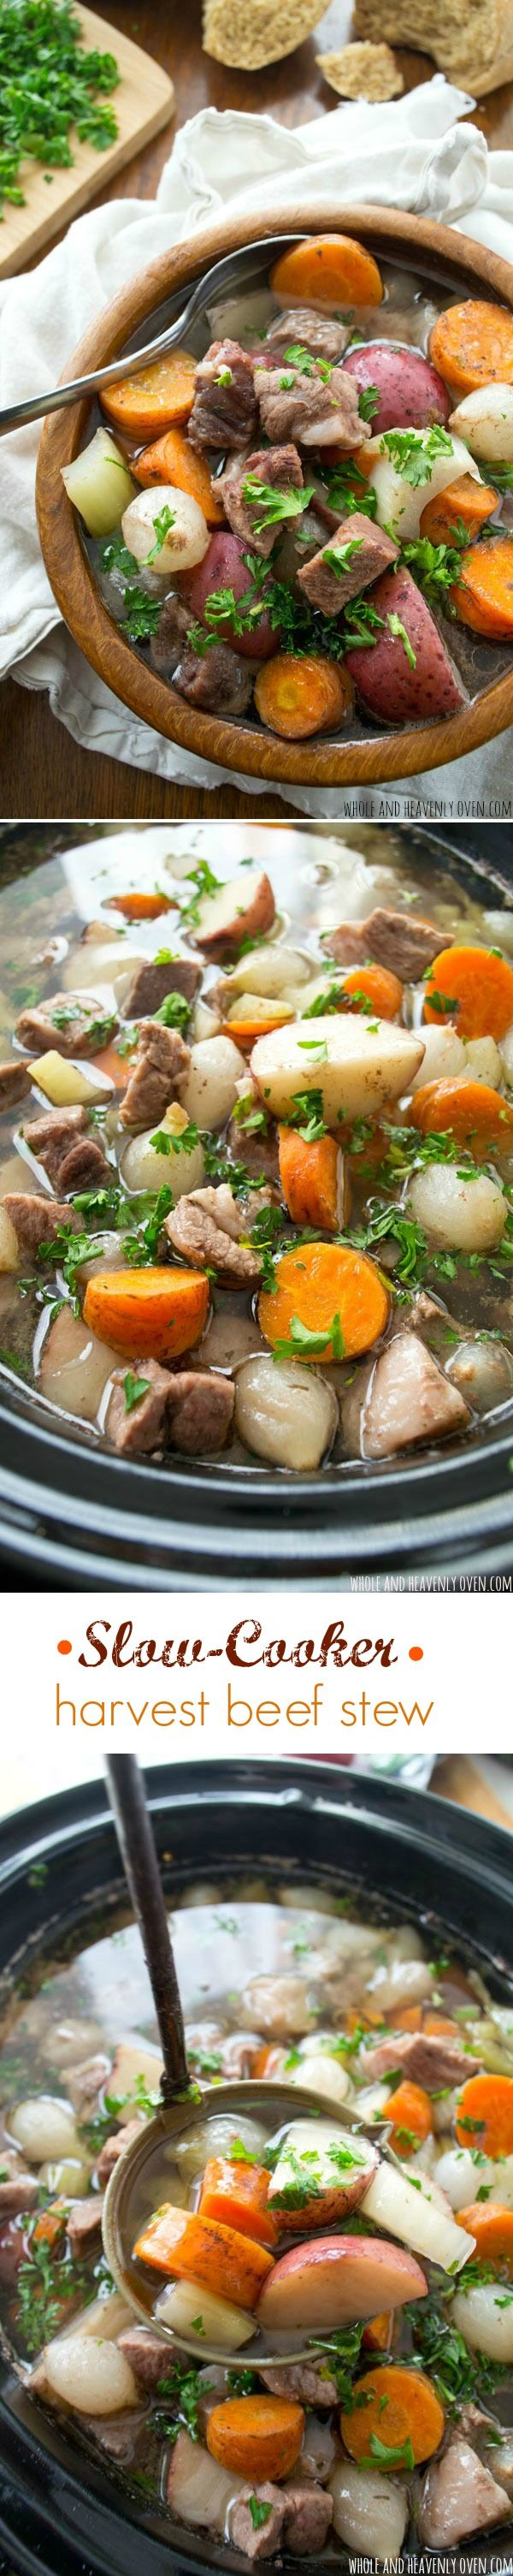 This hearty beef stew cooks completely in the crock-pot all day and is chock full of fall-apart-juicy beef, and tender harvest vegetables.---The perfect way to warm up on a chilly winter evening! @WholeHeavenly